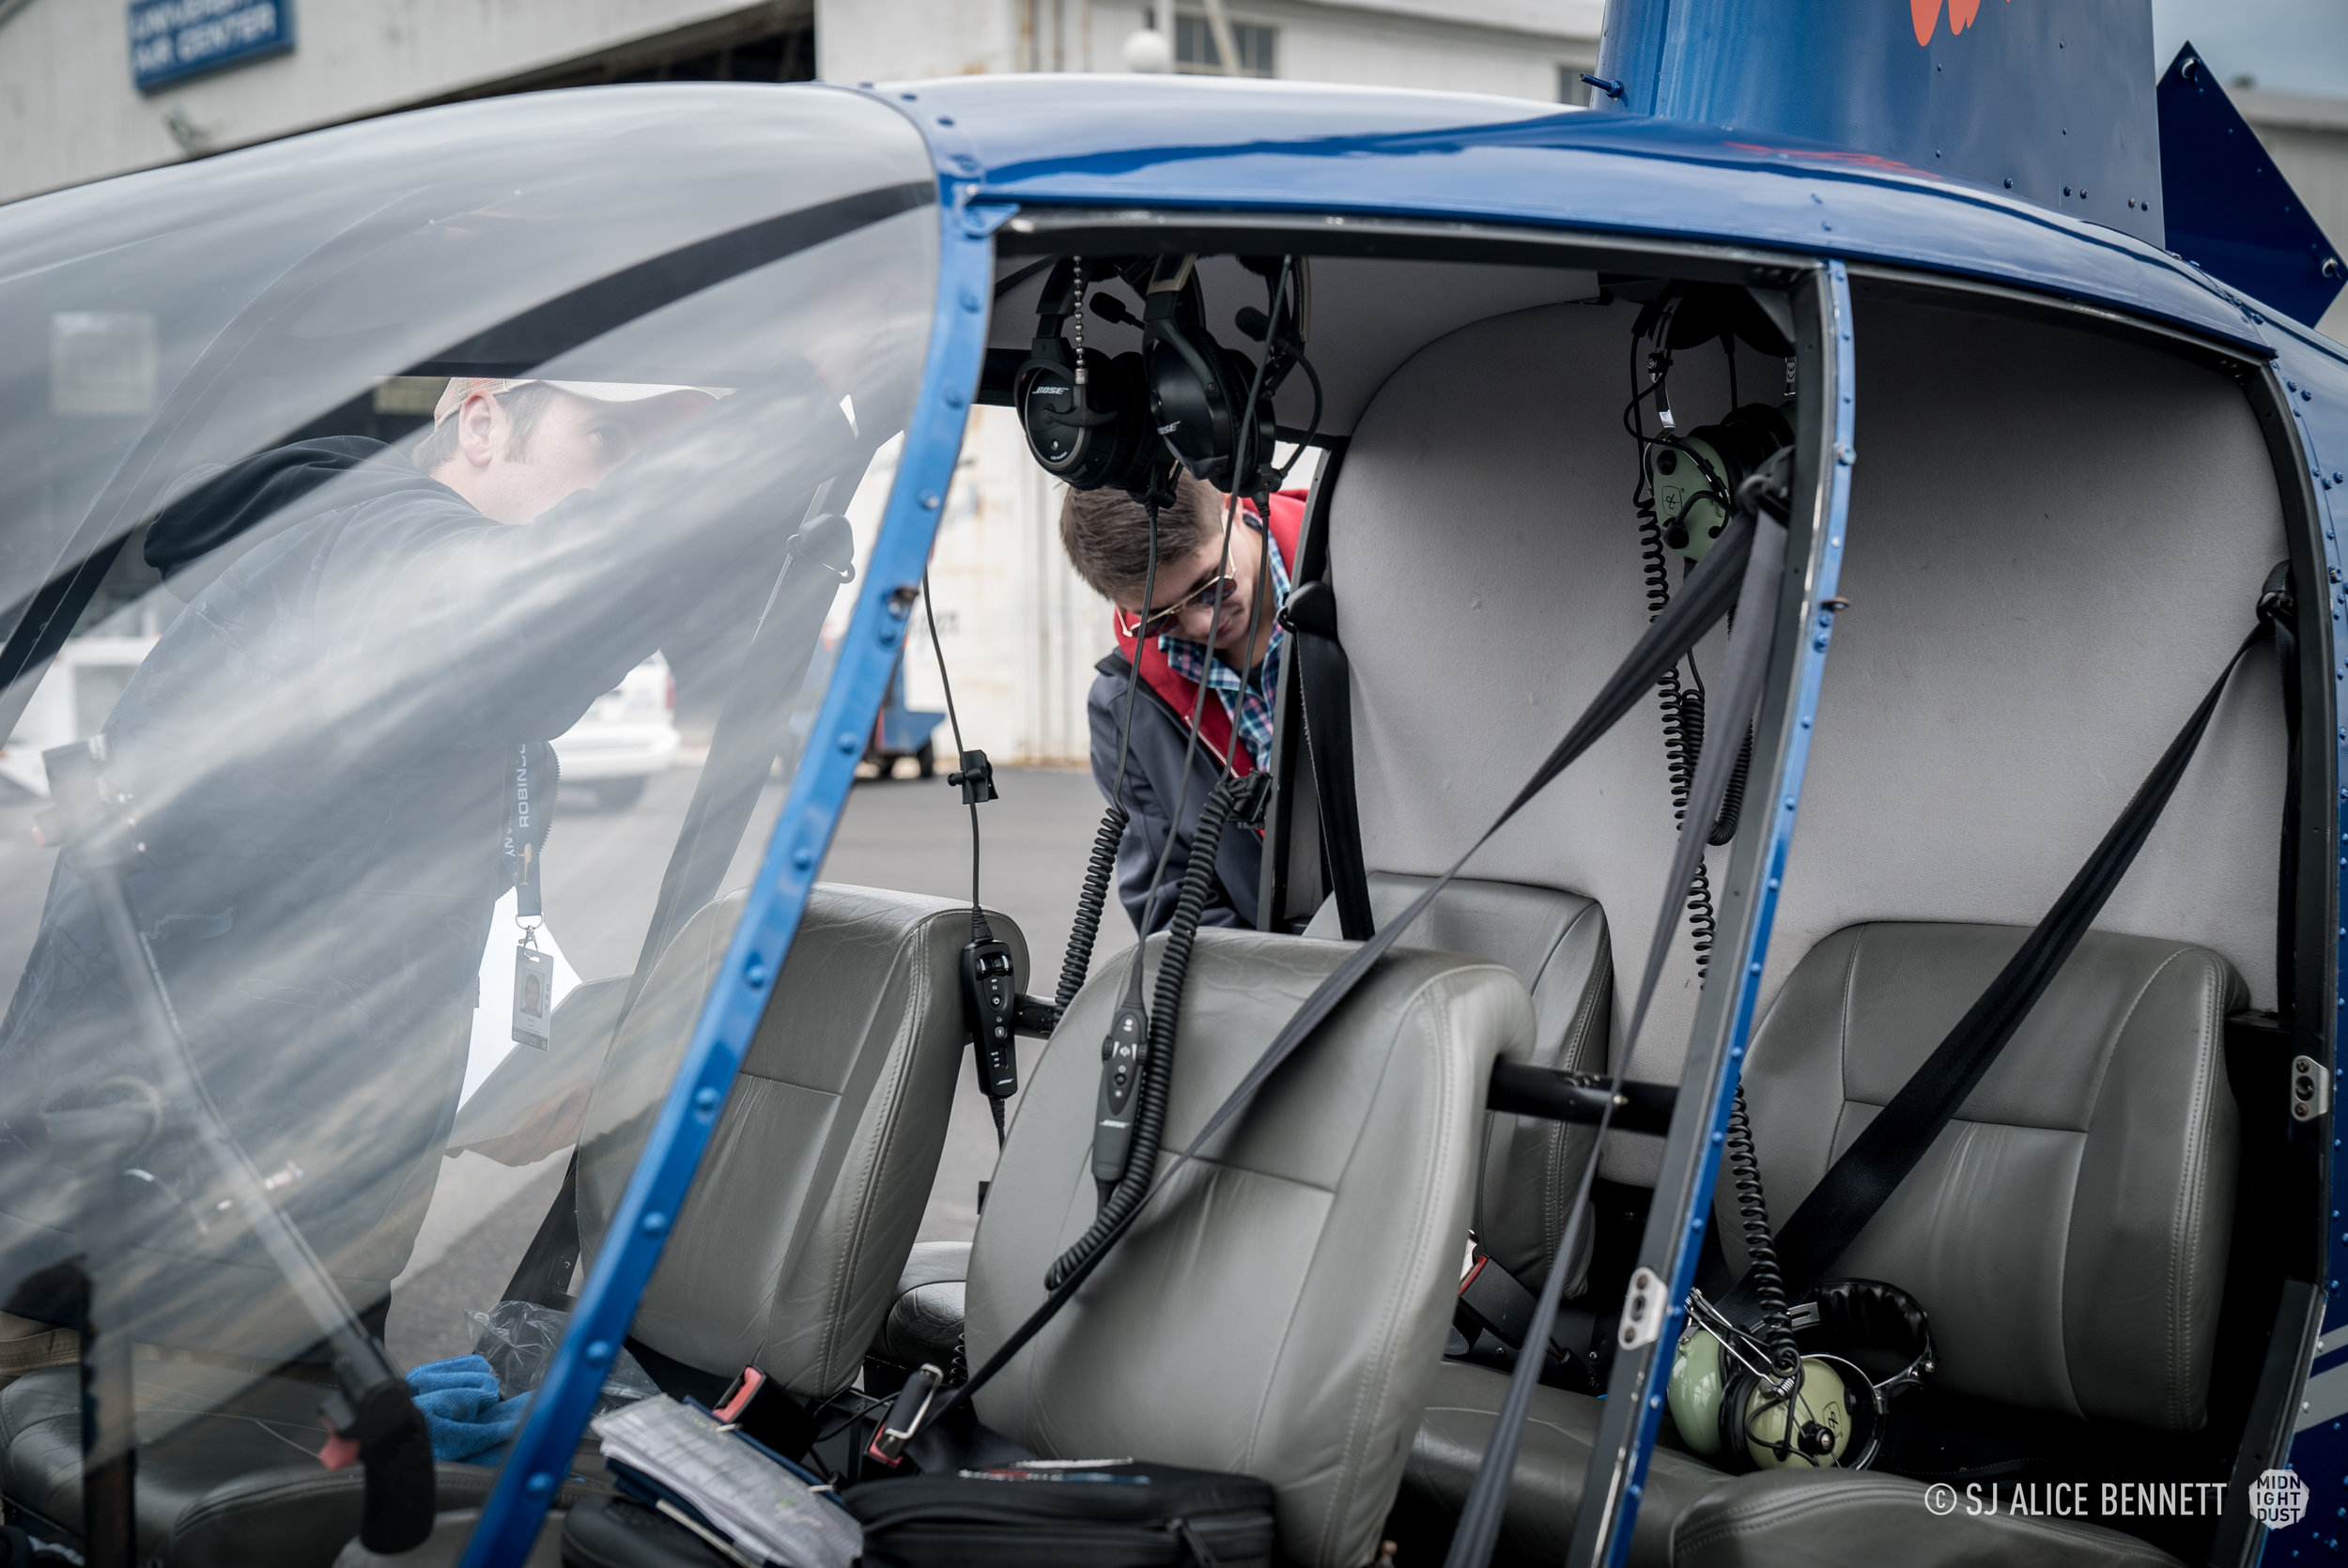 2018_12_19_Helicopter-9.jpg